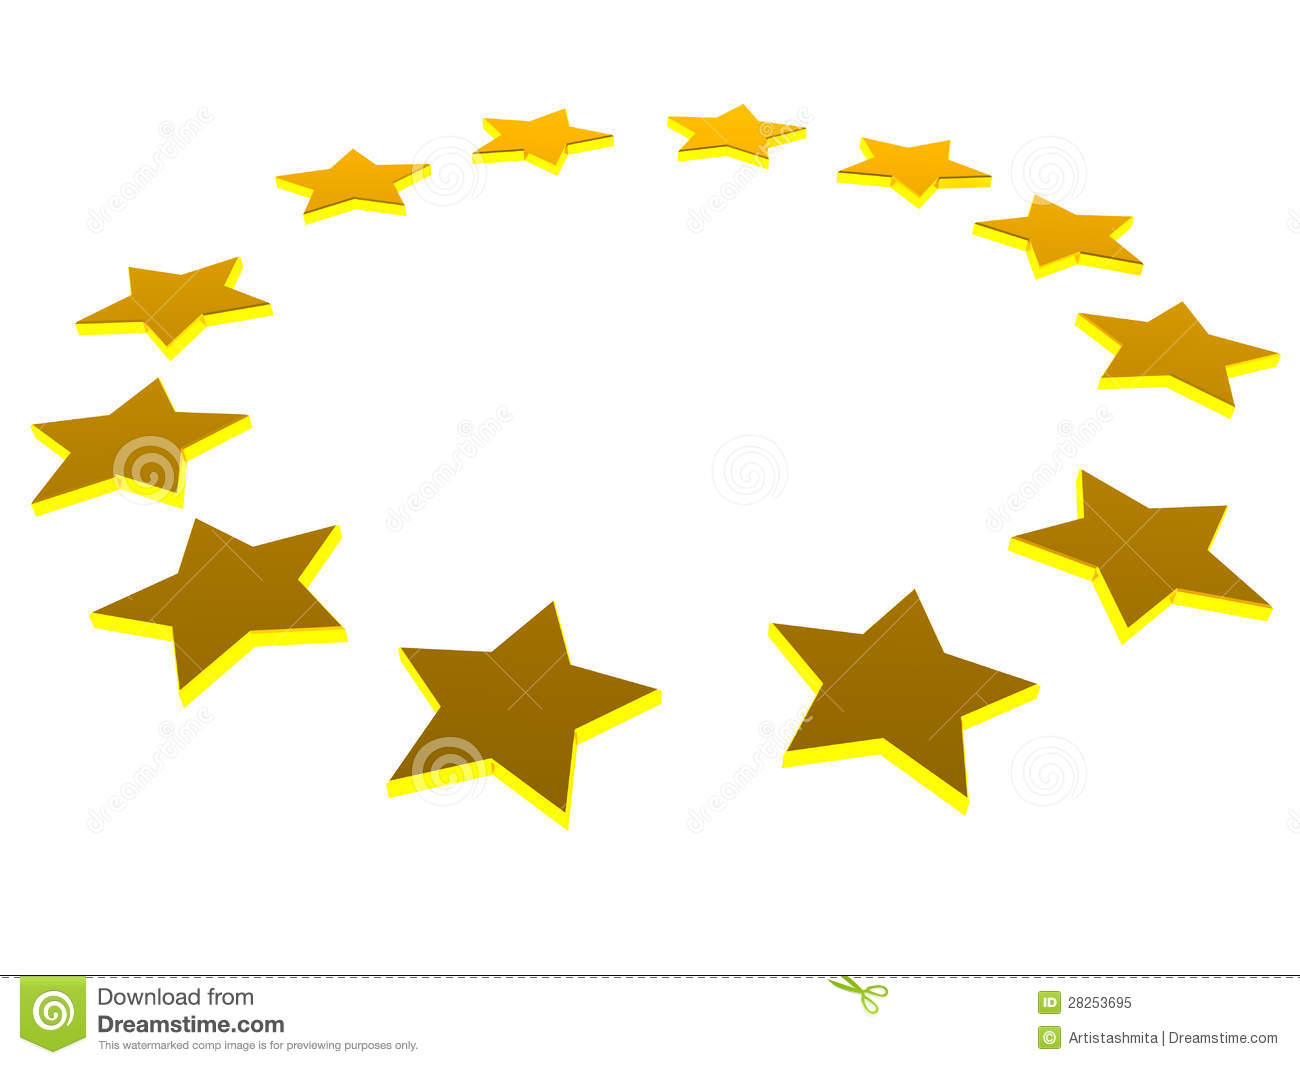 European Stars Royalty Free Stock Photo - Image: 28253695